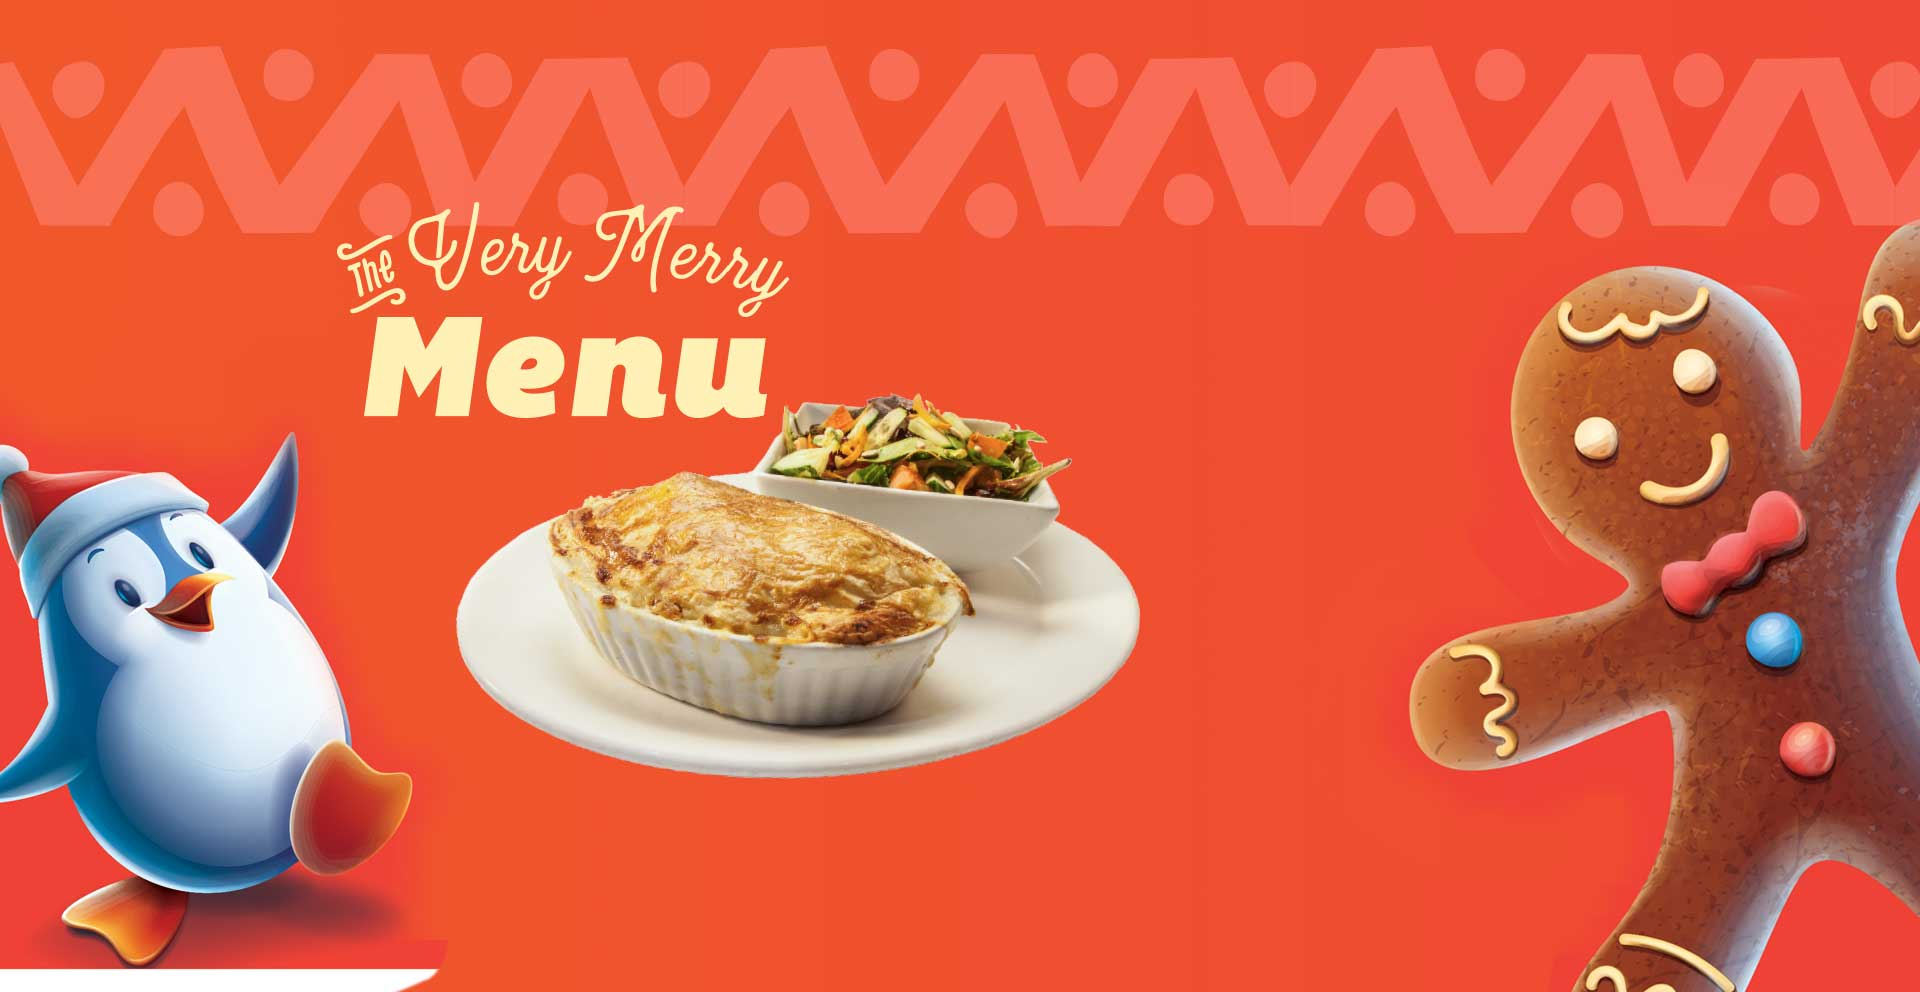 Choose from a homestyle slow roasted turkey dinner to turkey pot pie and much more.